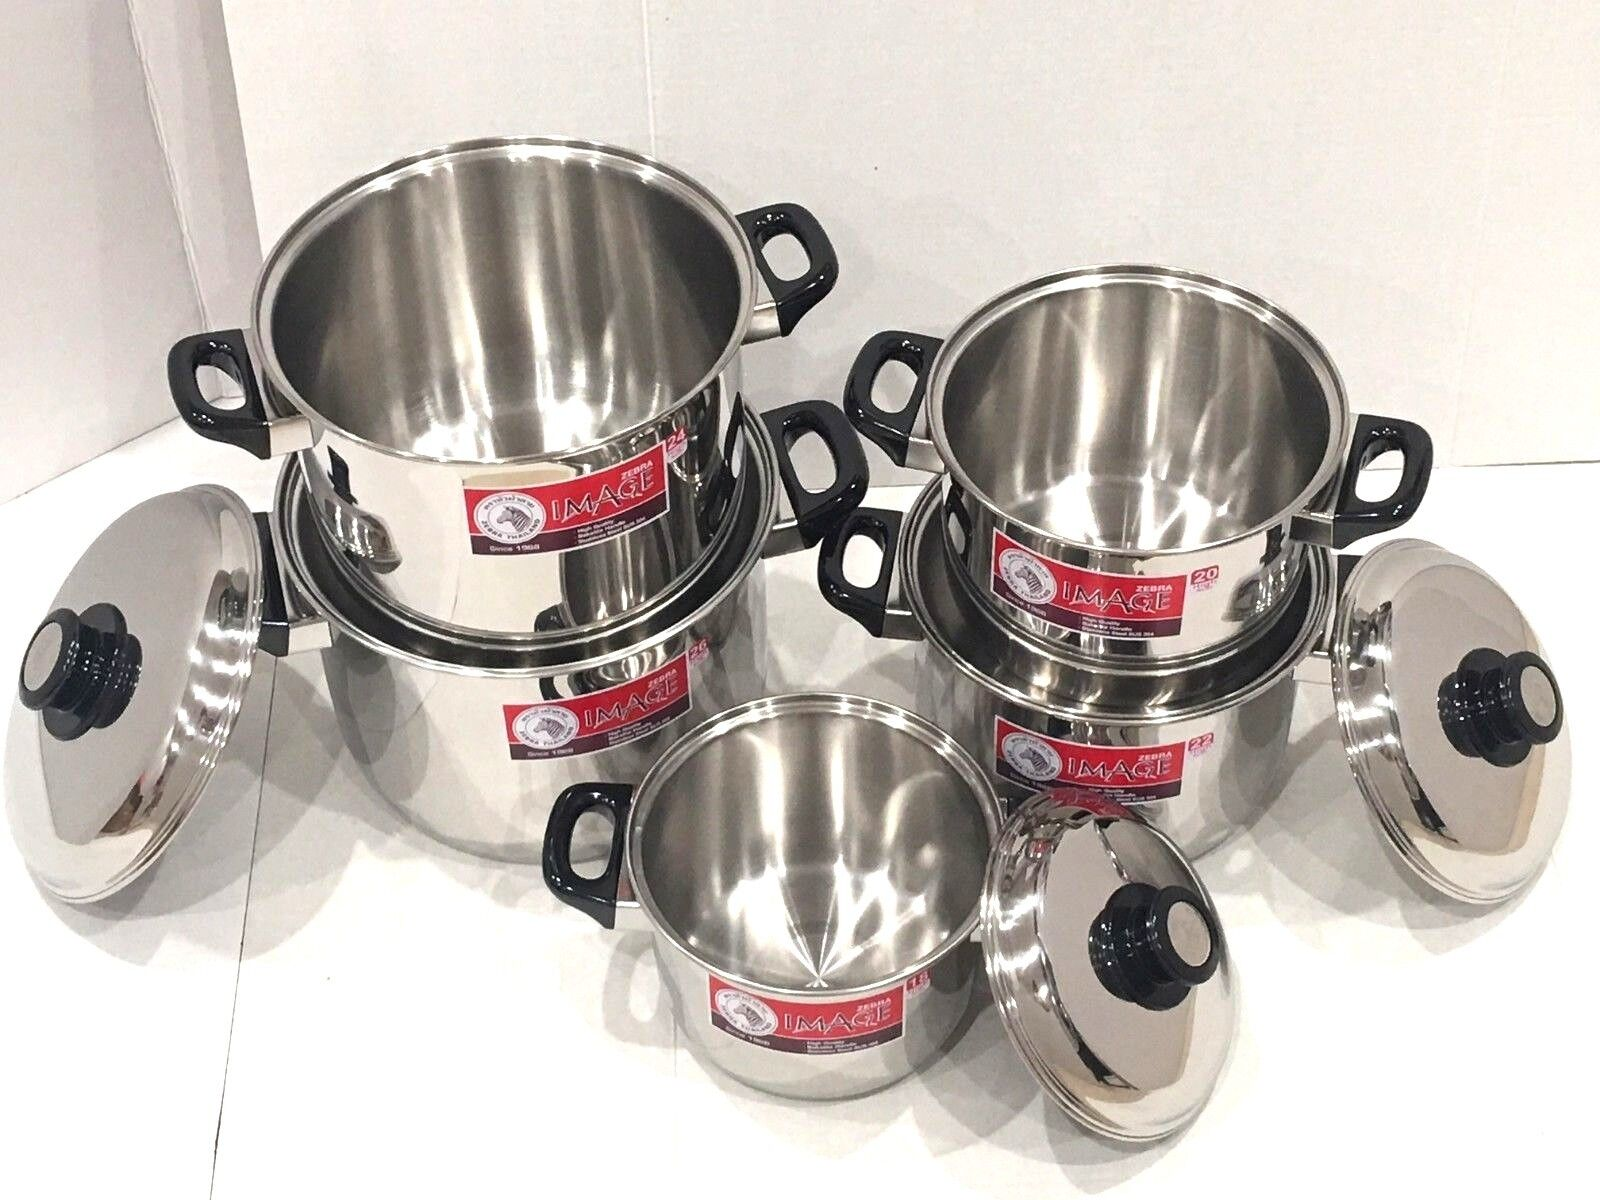 10Pcs Set Zebra Image, Stainless Steel Sauce Pot with Lid 18 - 26 CM - New